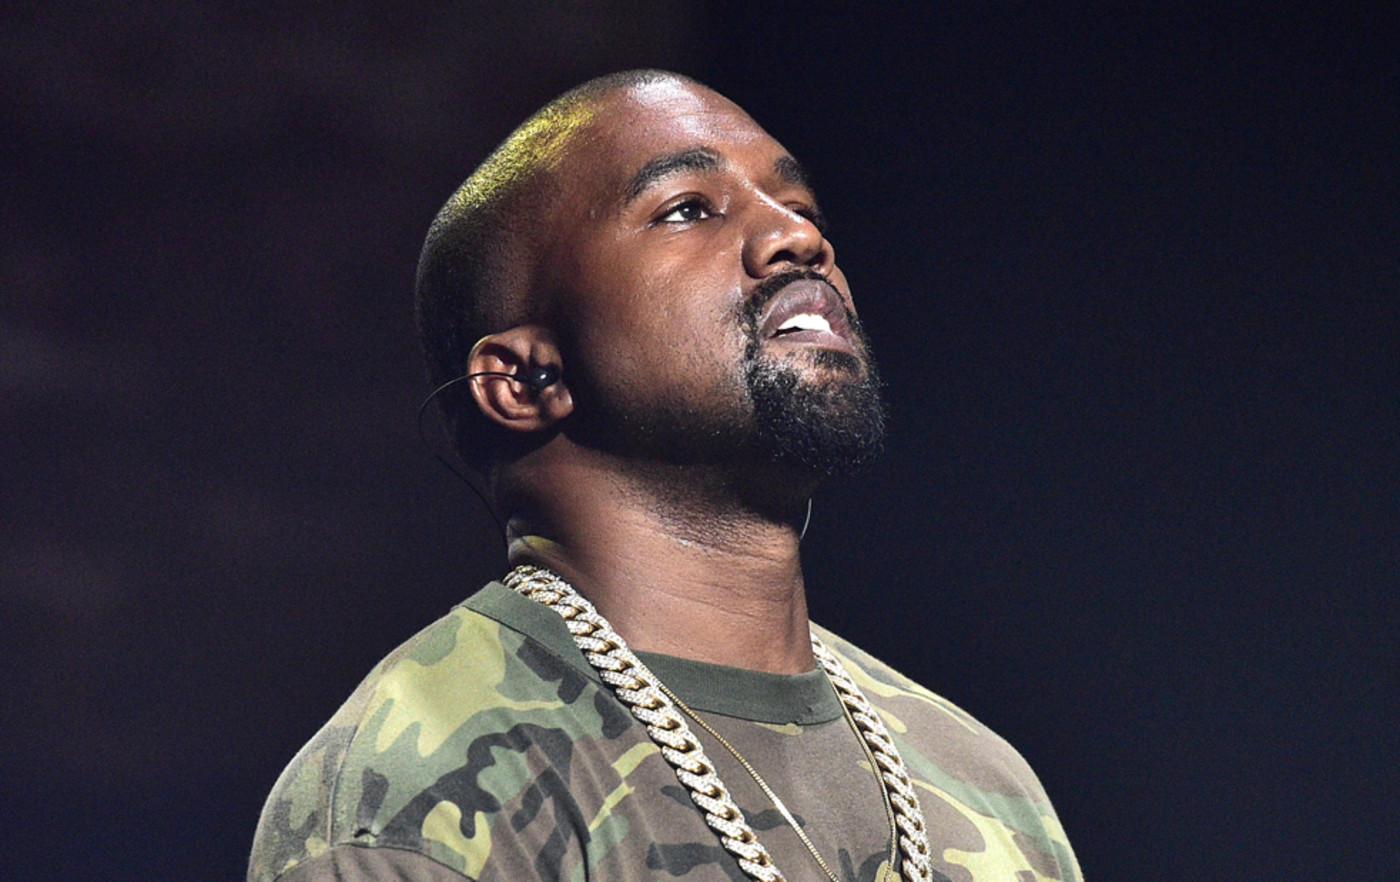 kanye-west-getty-march-5-prince-williams